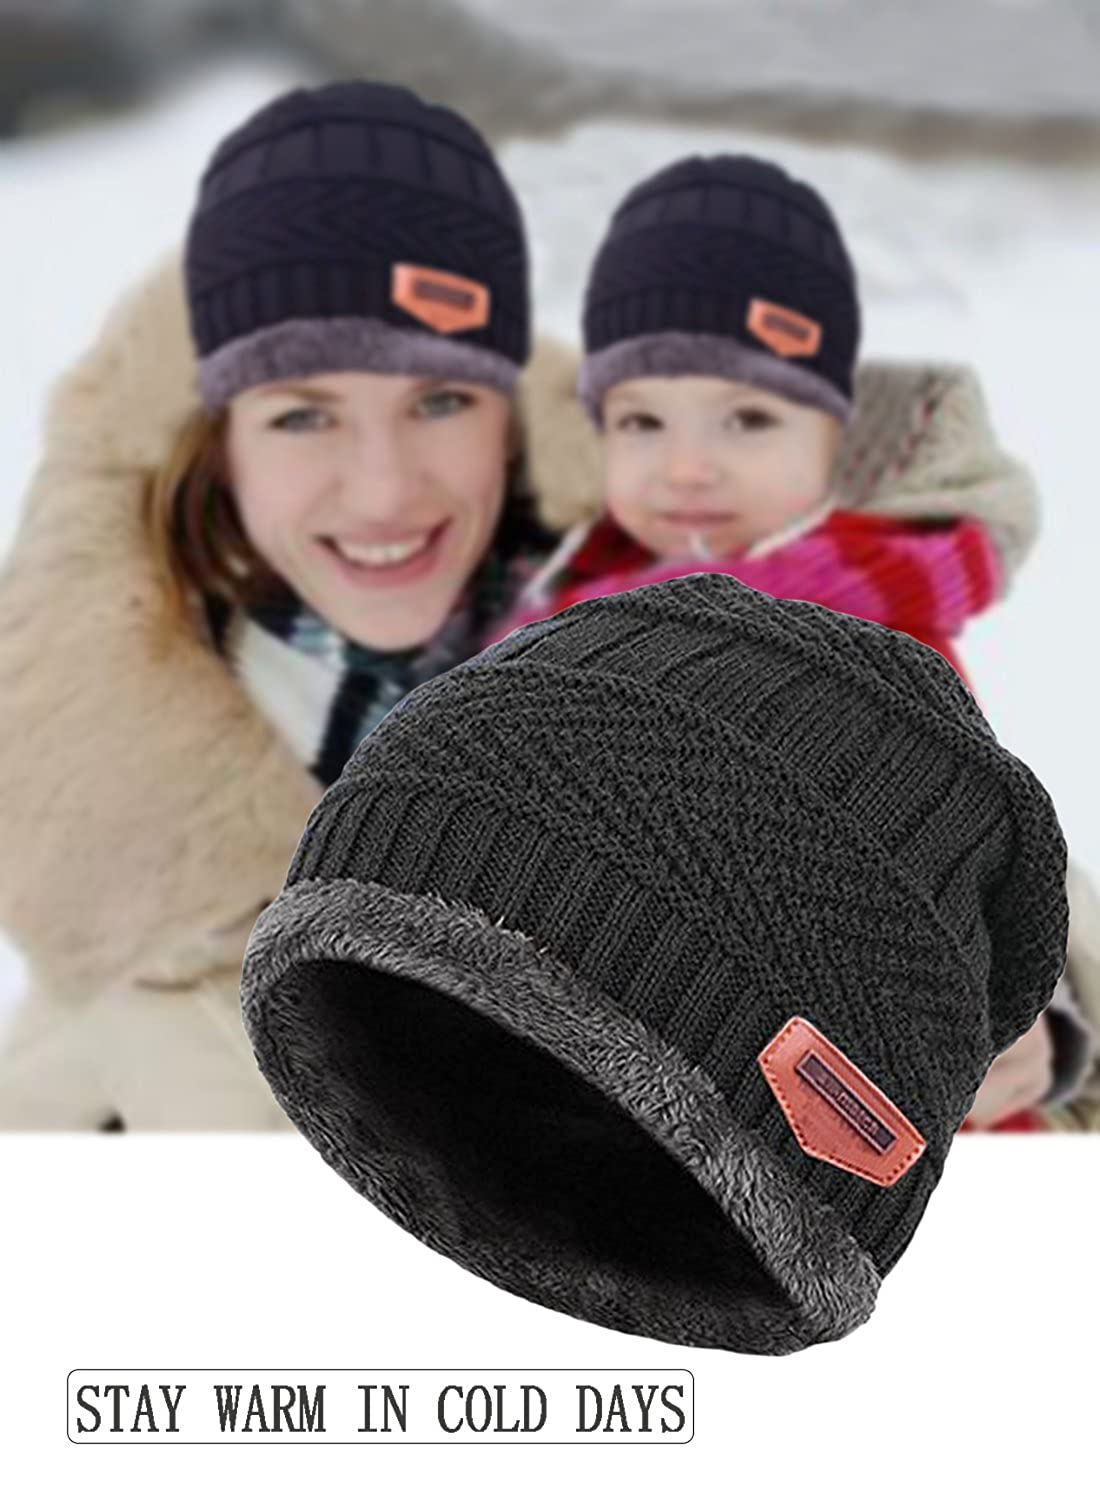 6f959c83ebe06 Amazon.com  T-wilker 2 Pcs Kids Winter Knitted Hats + Scarf Set Soft  Stretch Cable Warm Fleece lining Cap for 5-14 Year Old Boys Girls (Black)   Clothing